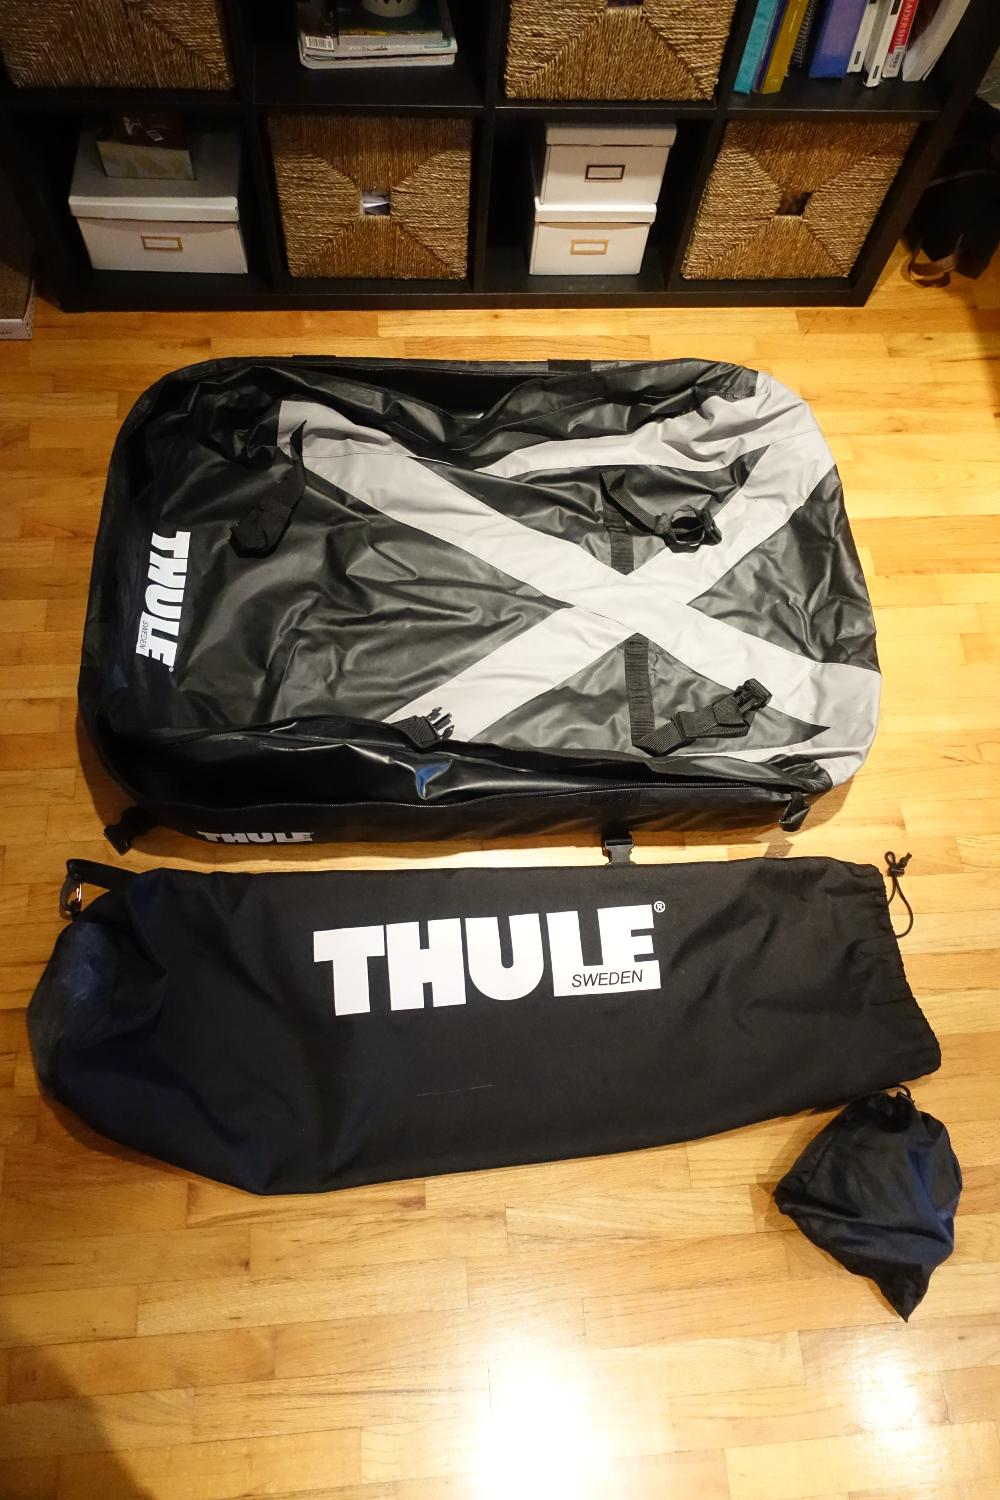 find more thule ranger 90 cargo bag for sale at up to 90 off victoria bc. Black Bedroom Furniture Sets. Home Design Ideas